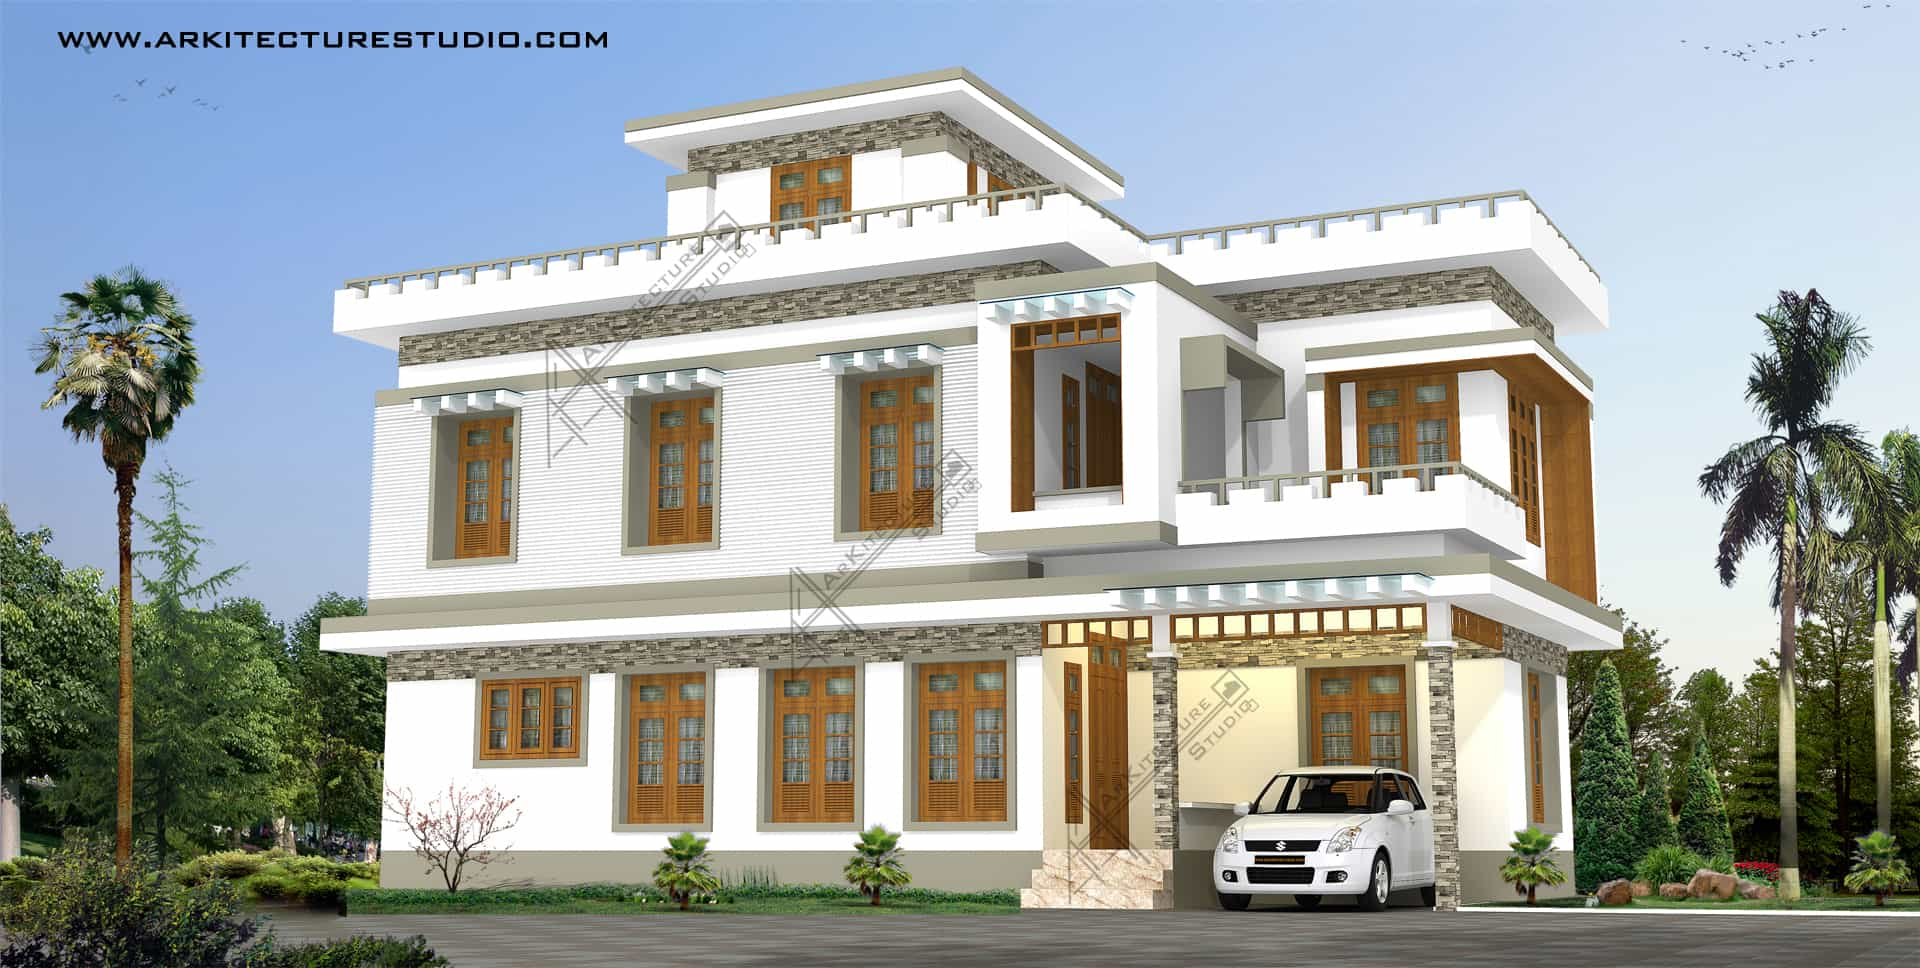 Kerala home designs 2015 5 designs photos khp for New home designs 2015